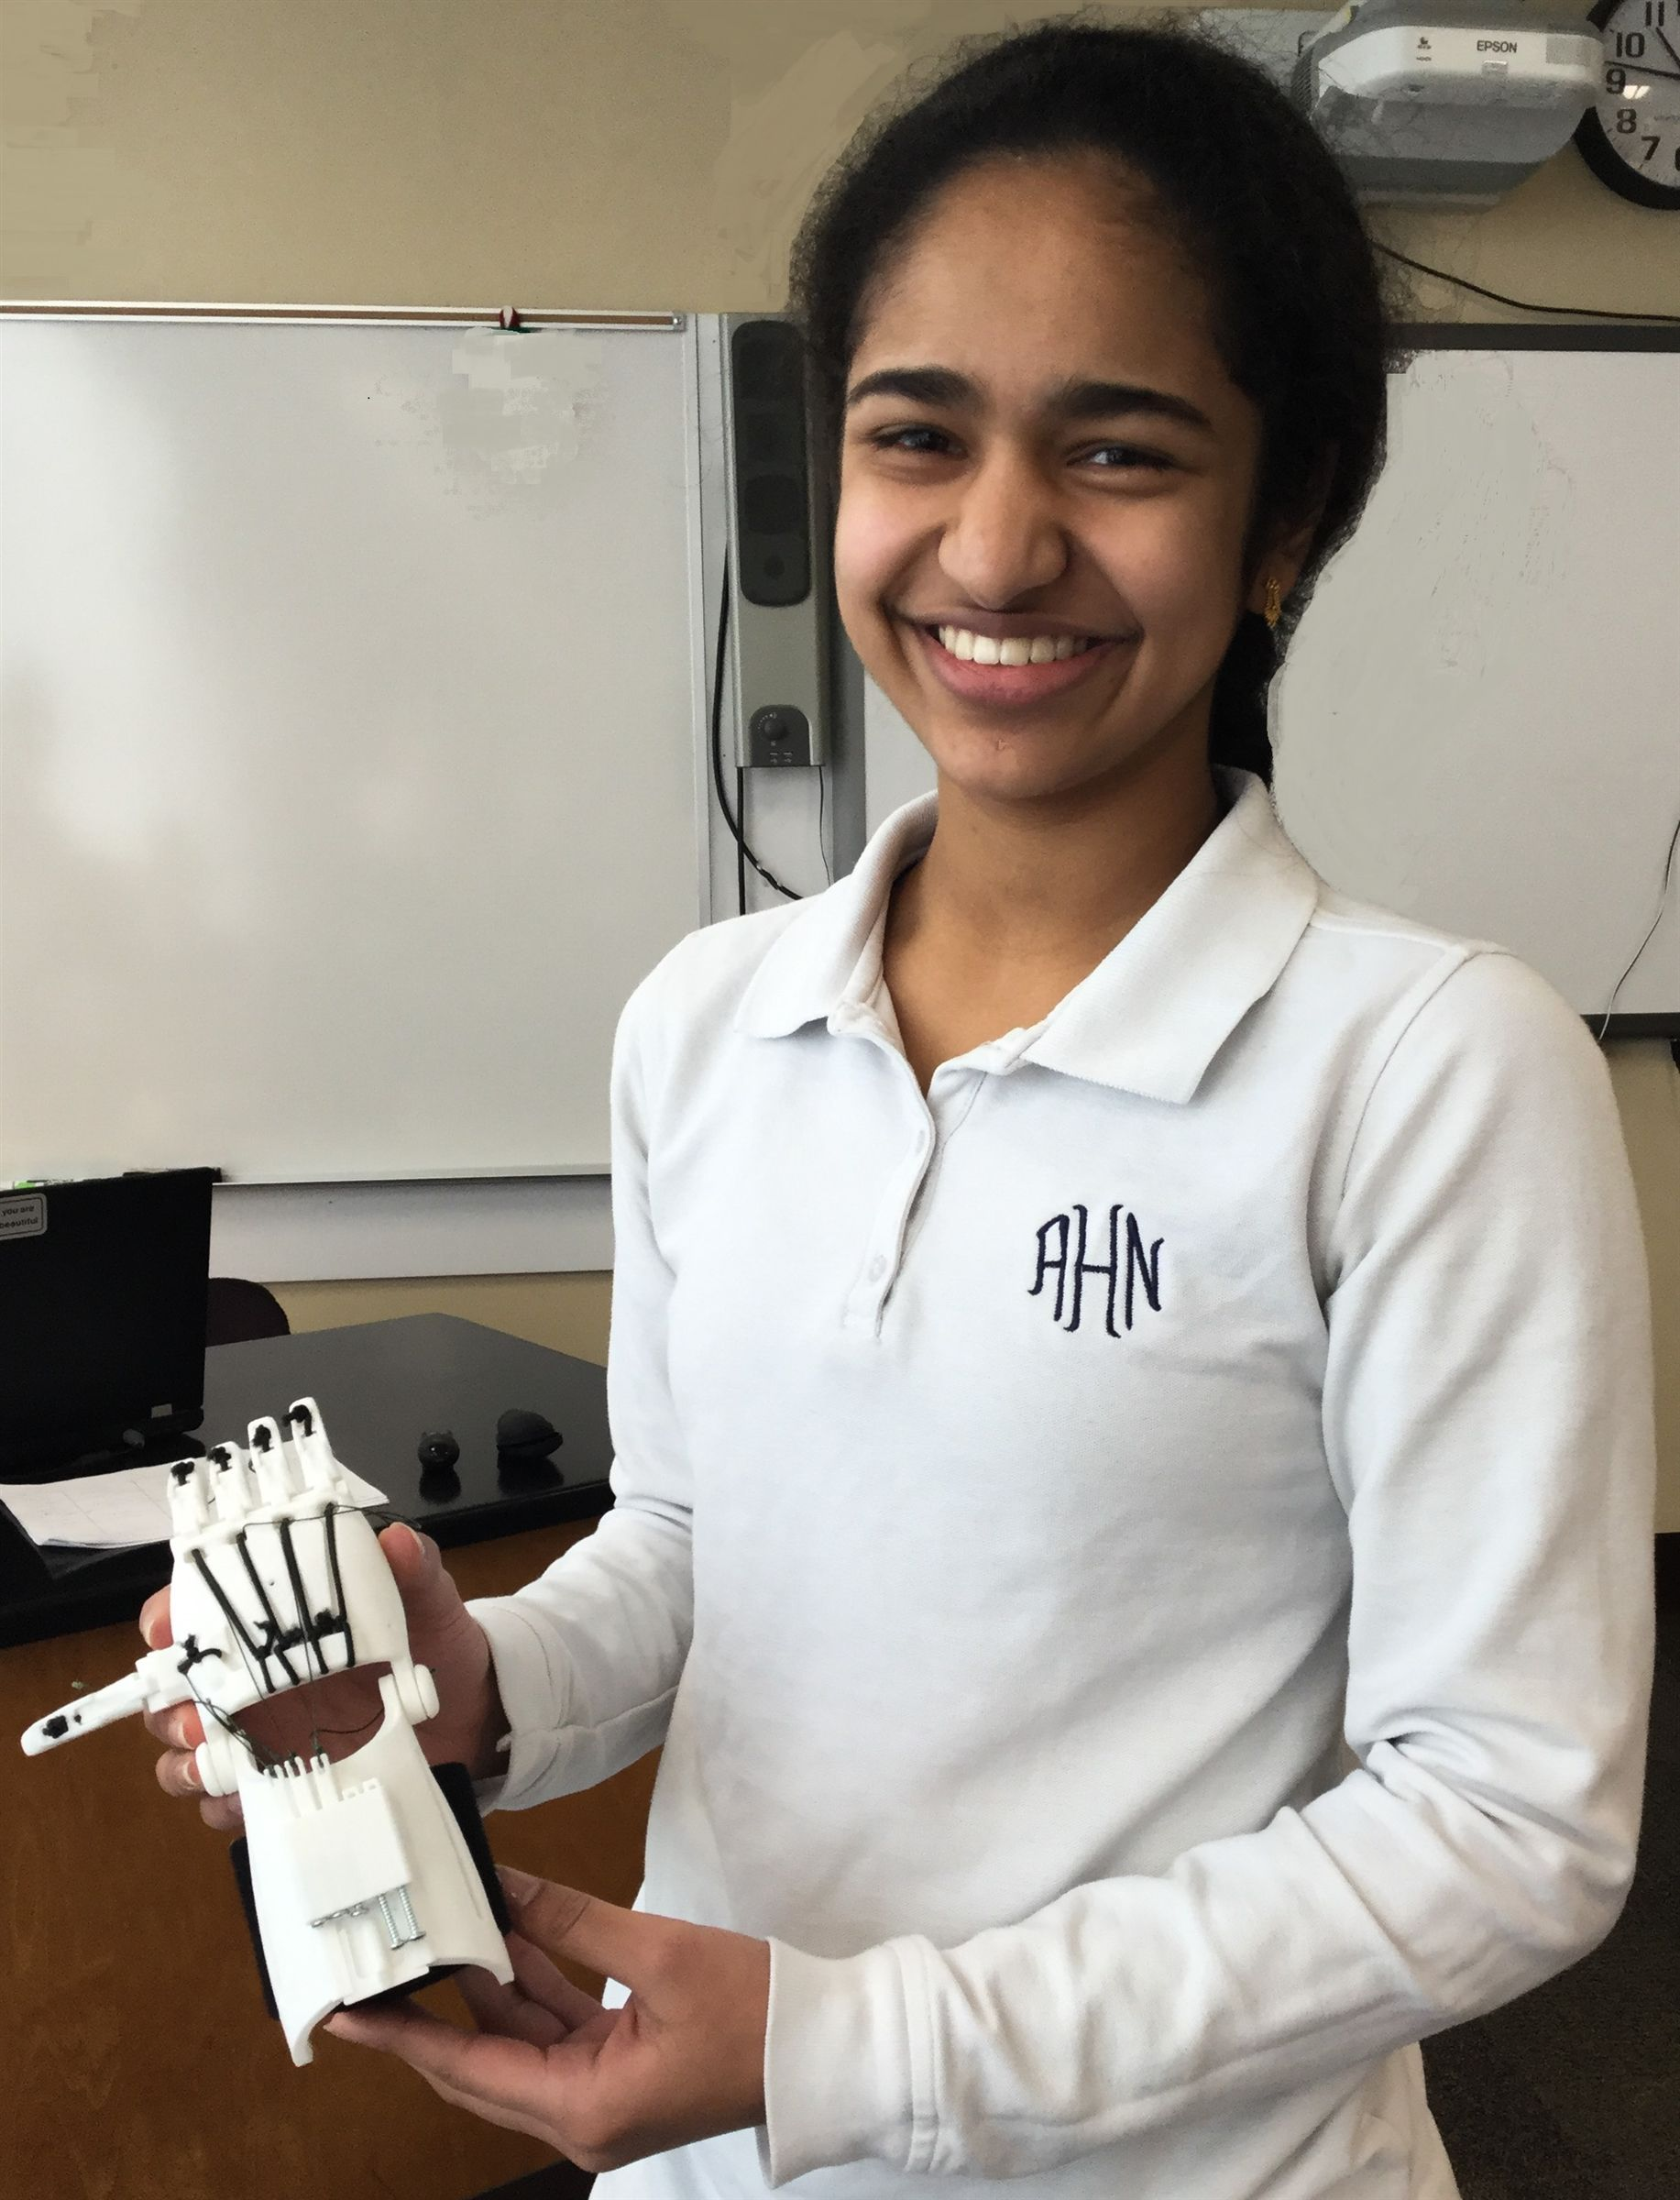 Science Research student, Andrea, displays the printed, assembled prosthetic hand that she's using to help her understand how a functioning prosthetic might be improved.